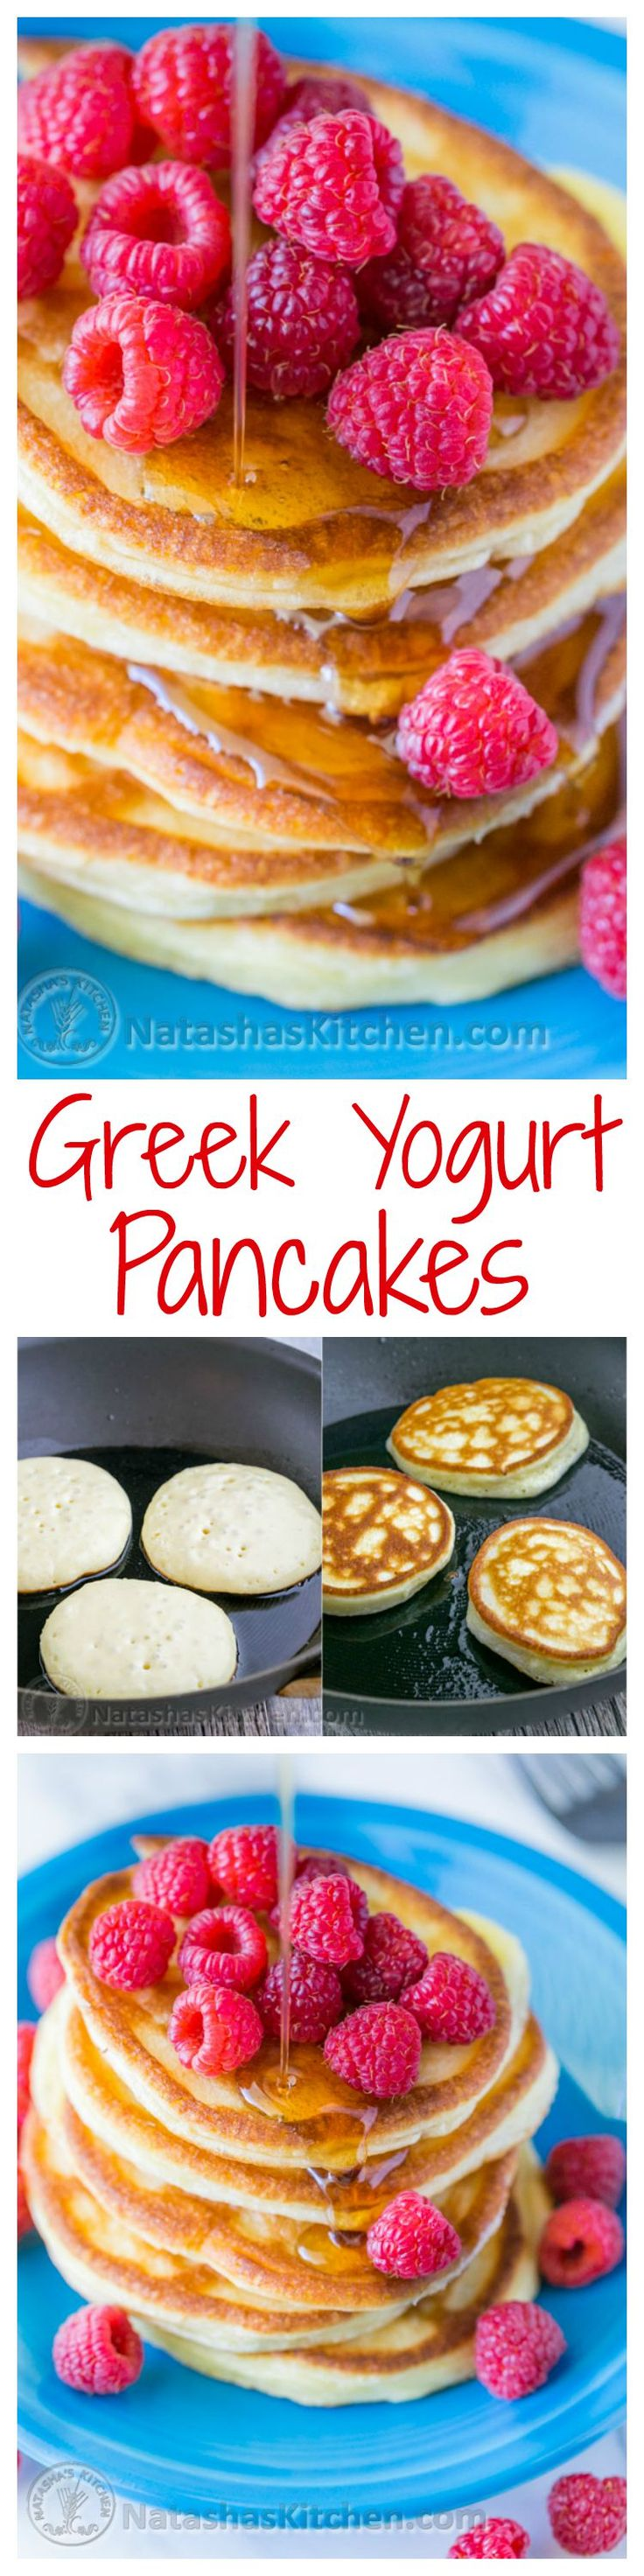 These Greek yogurt pancakes aren't your standard pancakes! Greek yogurt pancakes are healthier than normal pancakes. These are delicate and crisp on the edges - delicious!| natashaskitchen.com